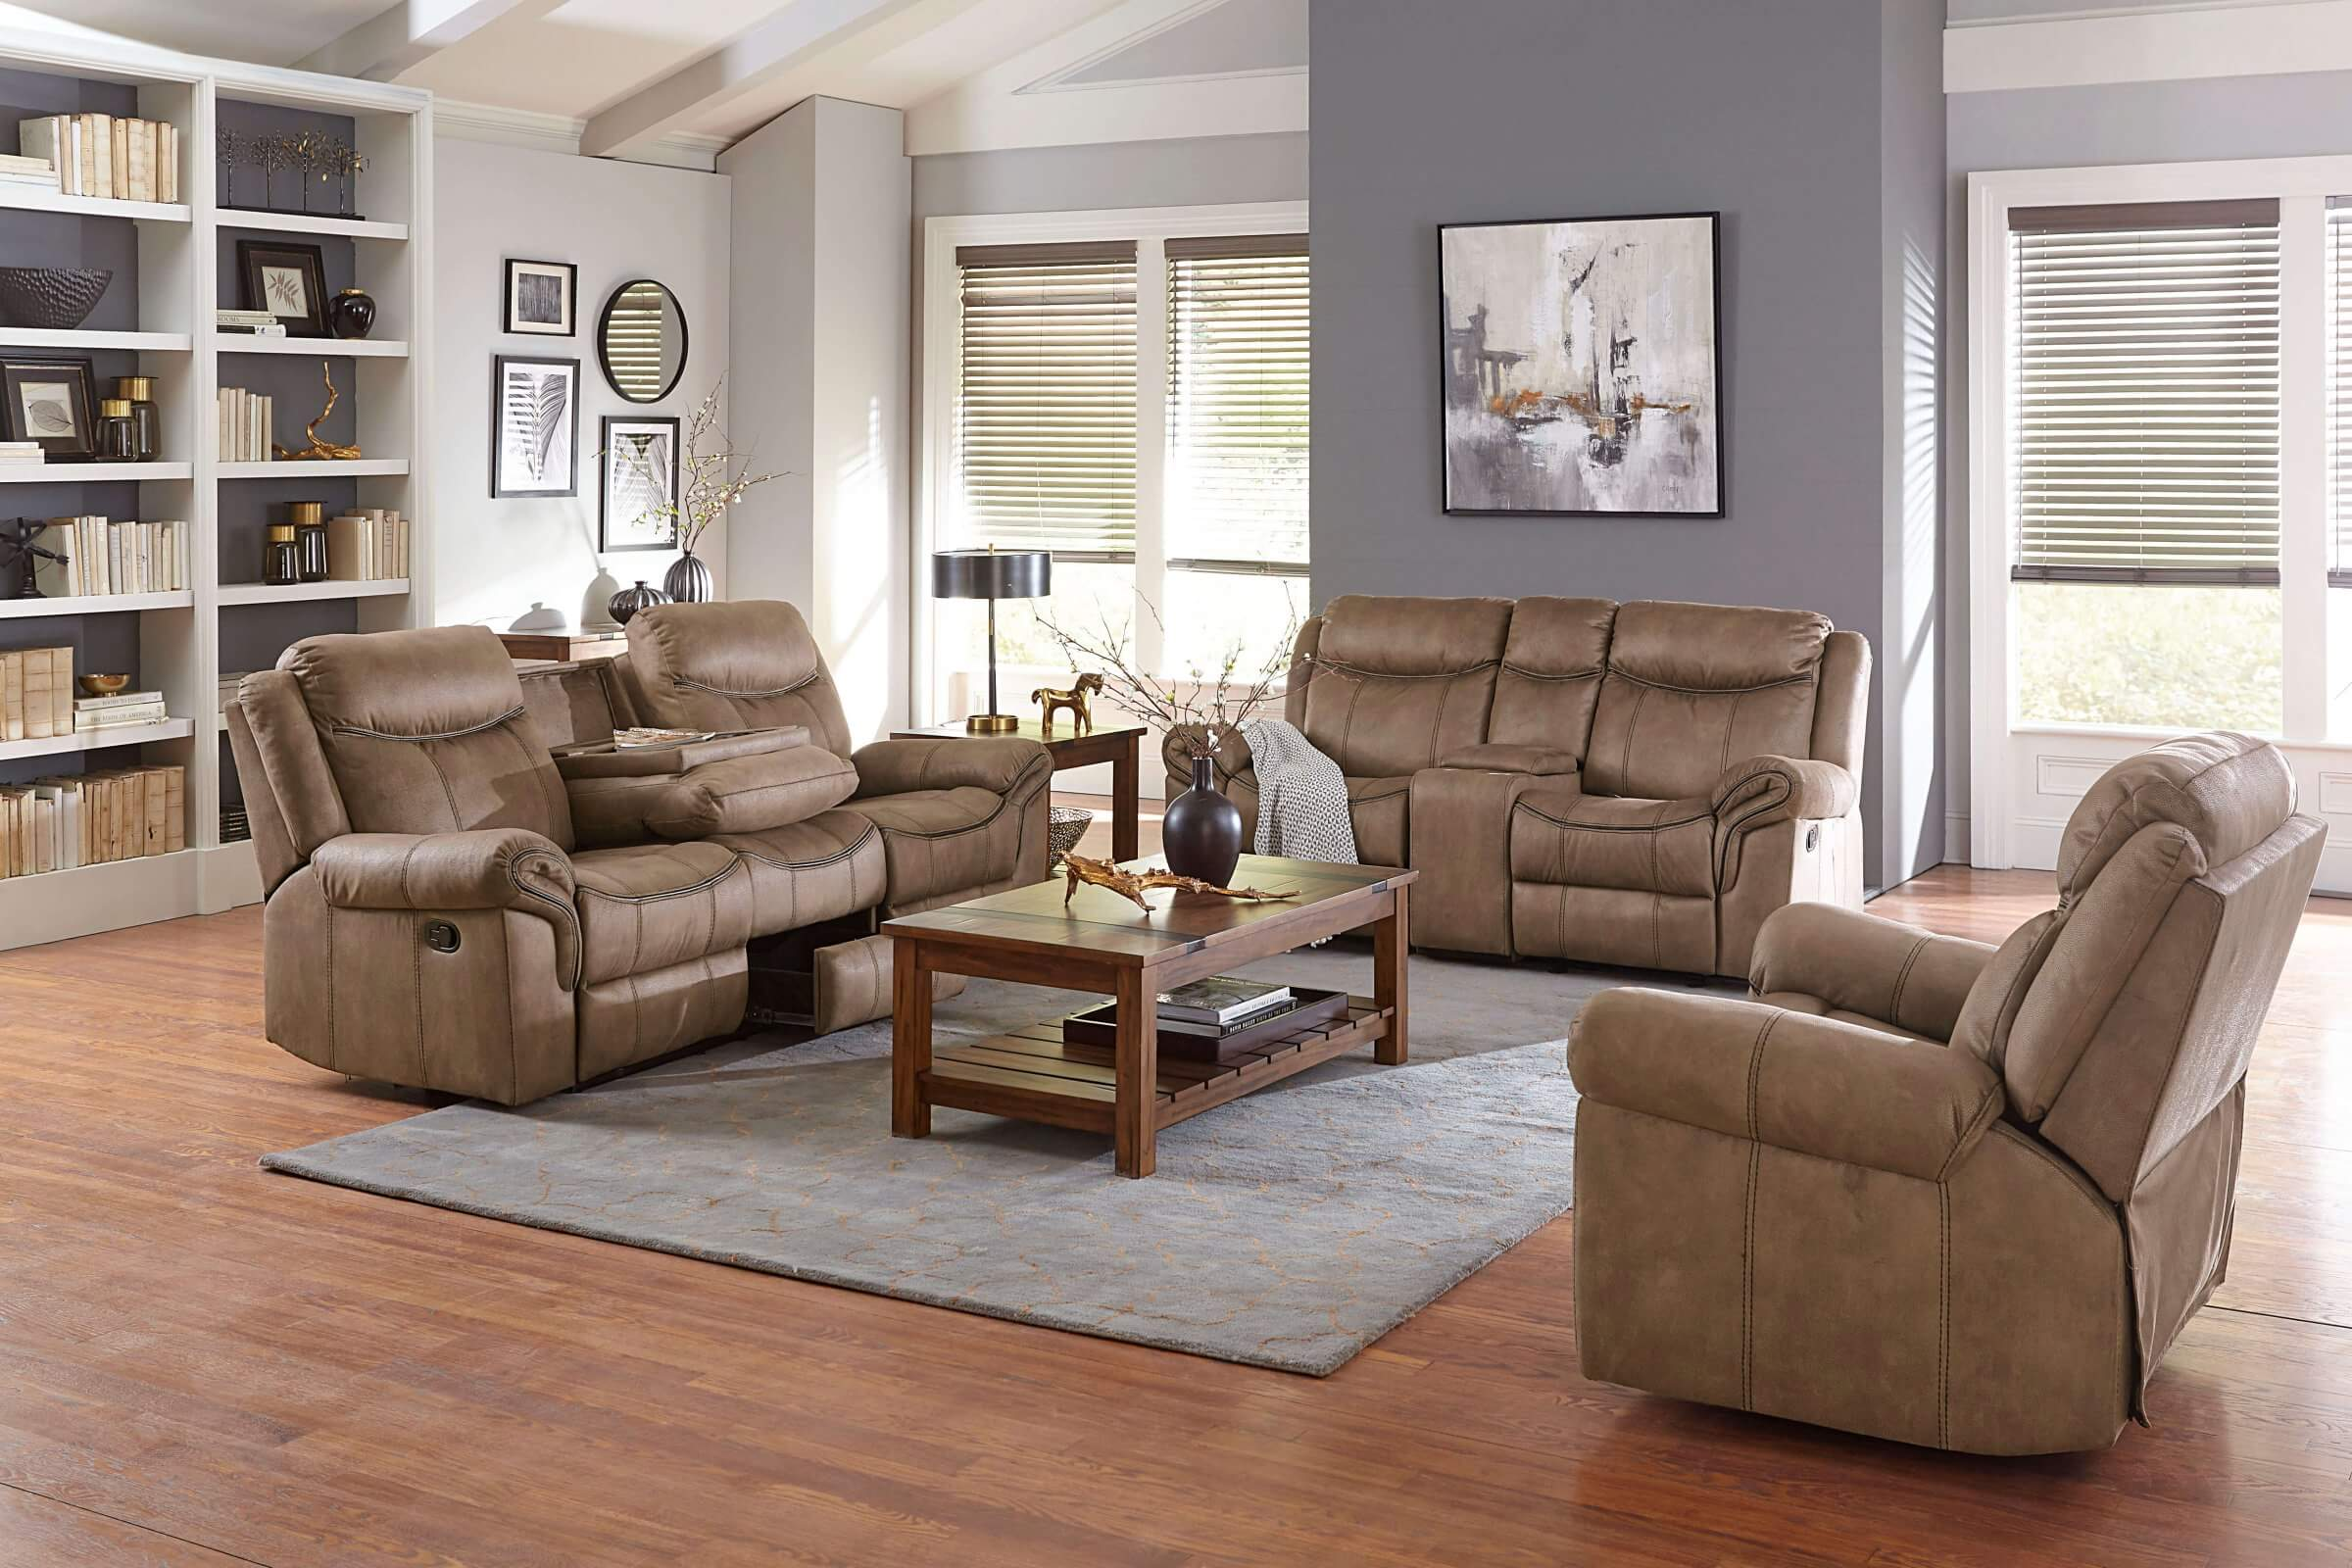 Knoxville Furniture Stores | Furniture Stores